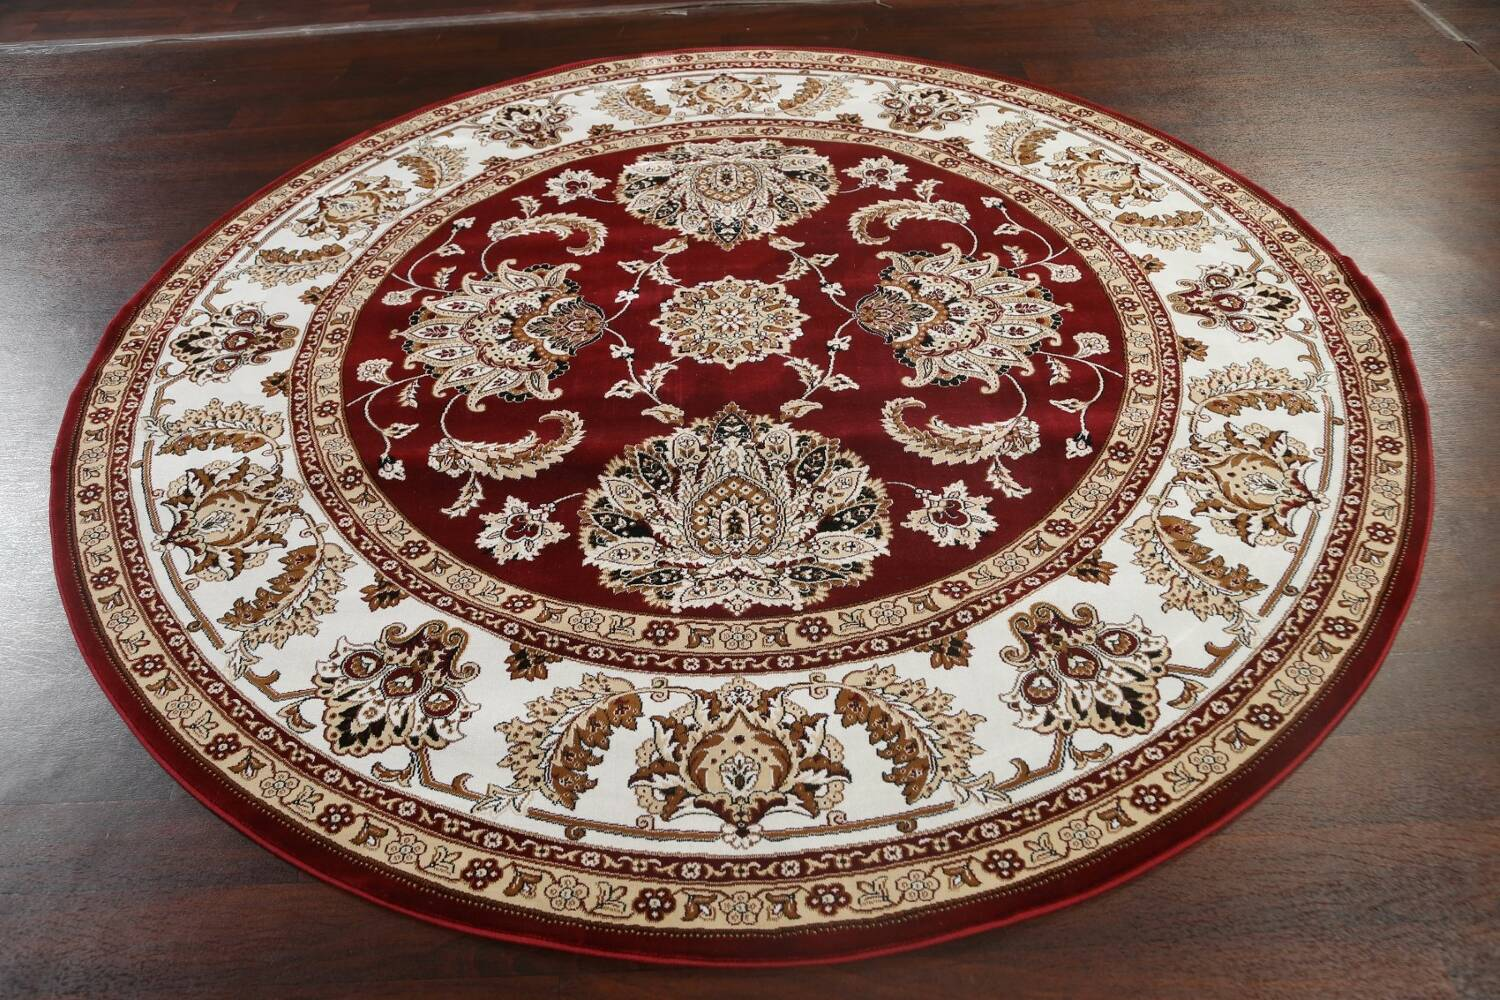 Traditional Floral Tabriz Area Rug image 58